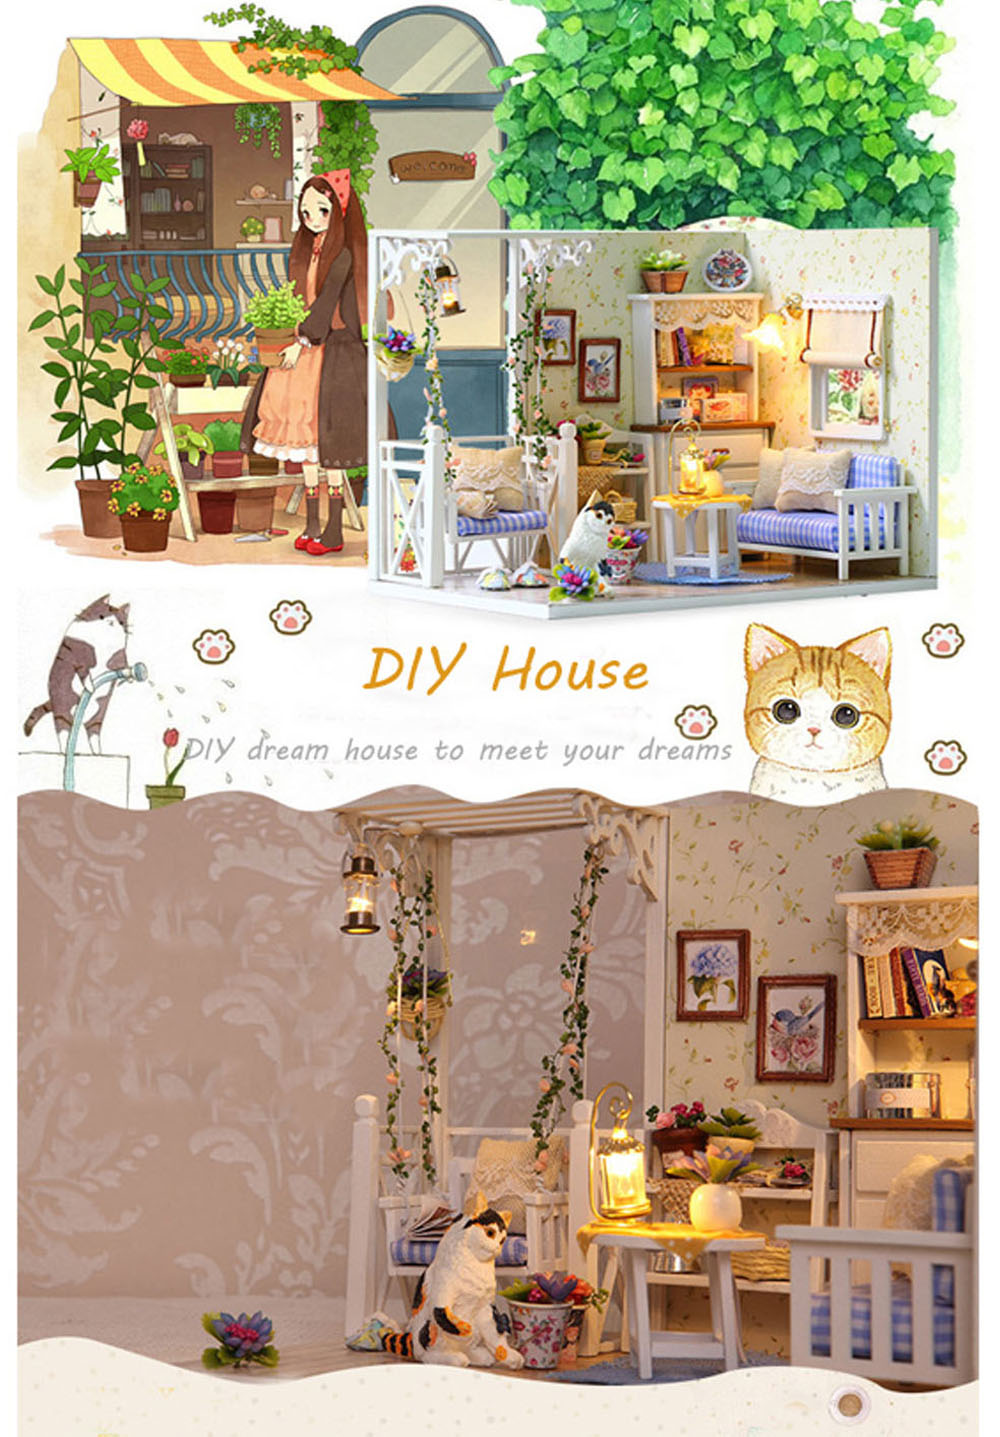 H - 013 DIY Wooden Doll House Furniture Handcraft Kit with Cover LED Light - Cat Diary